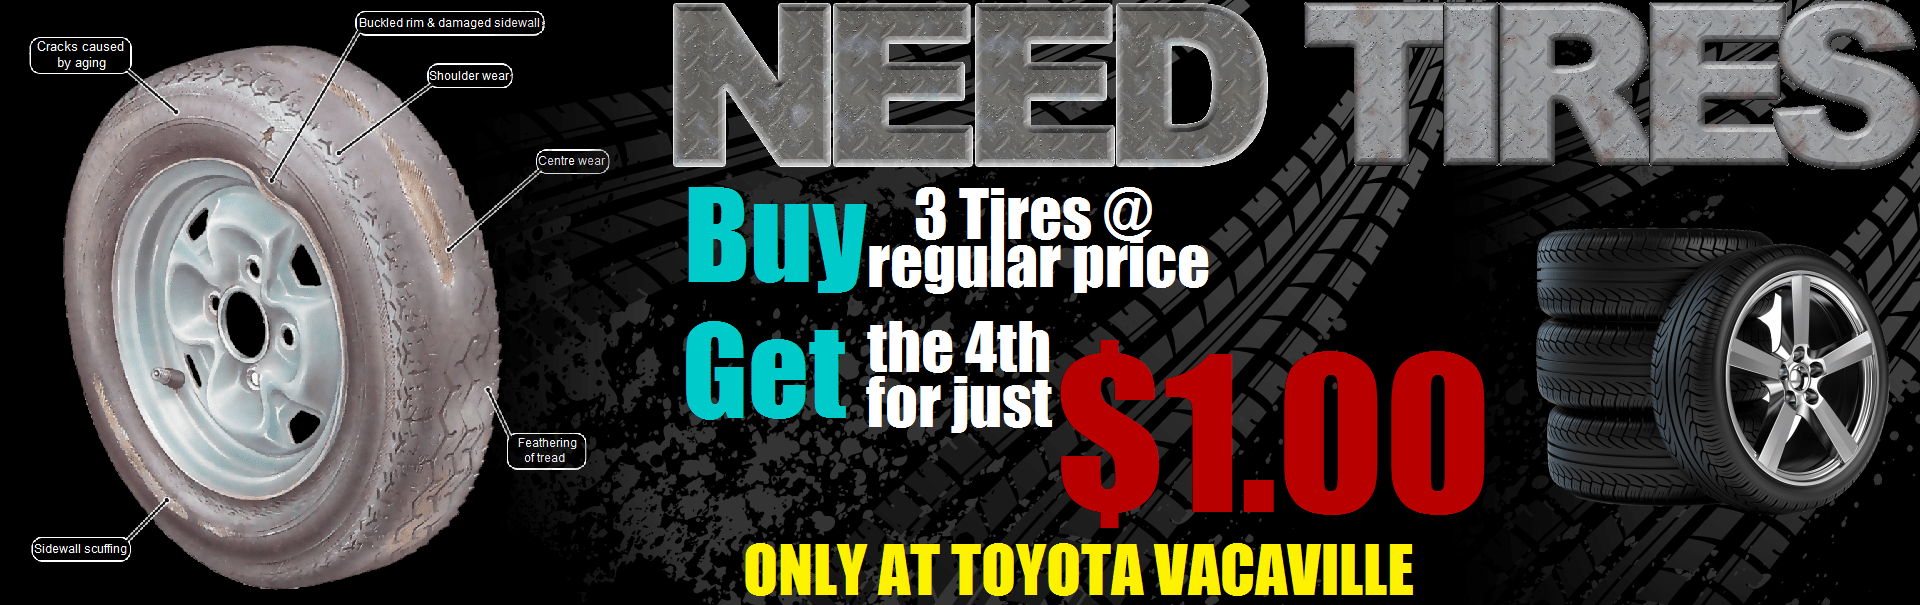 Bogo Tires at Toyota Vacaville